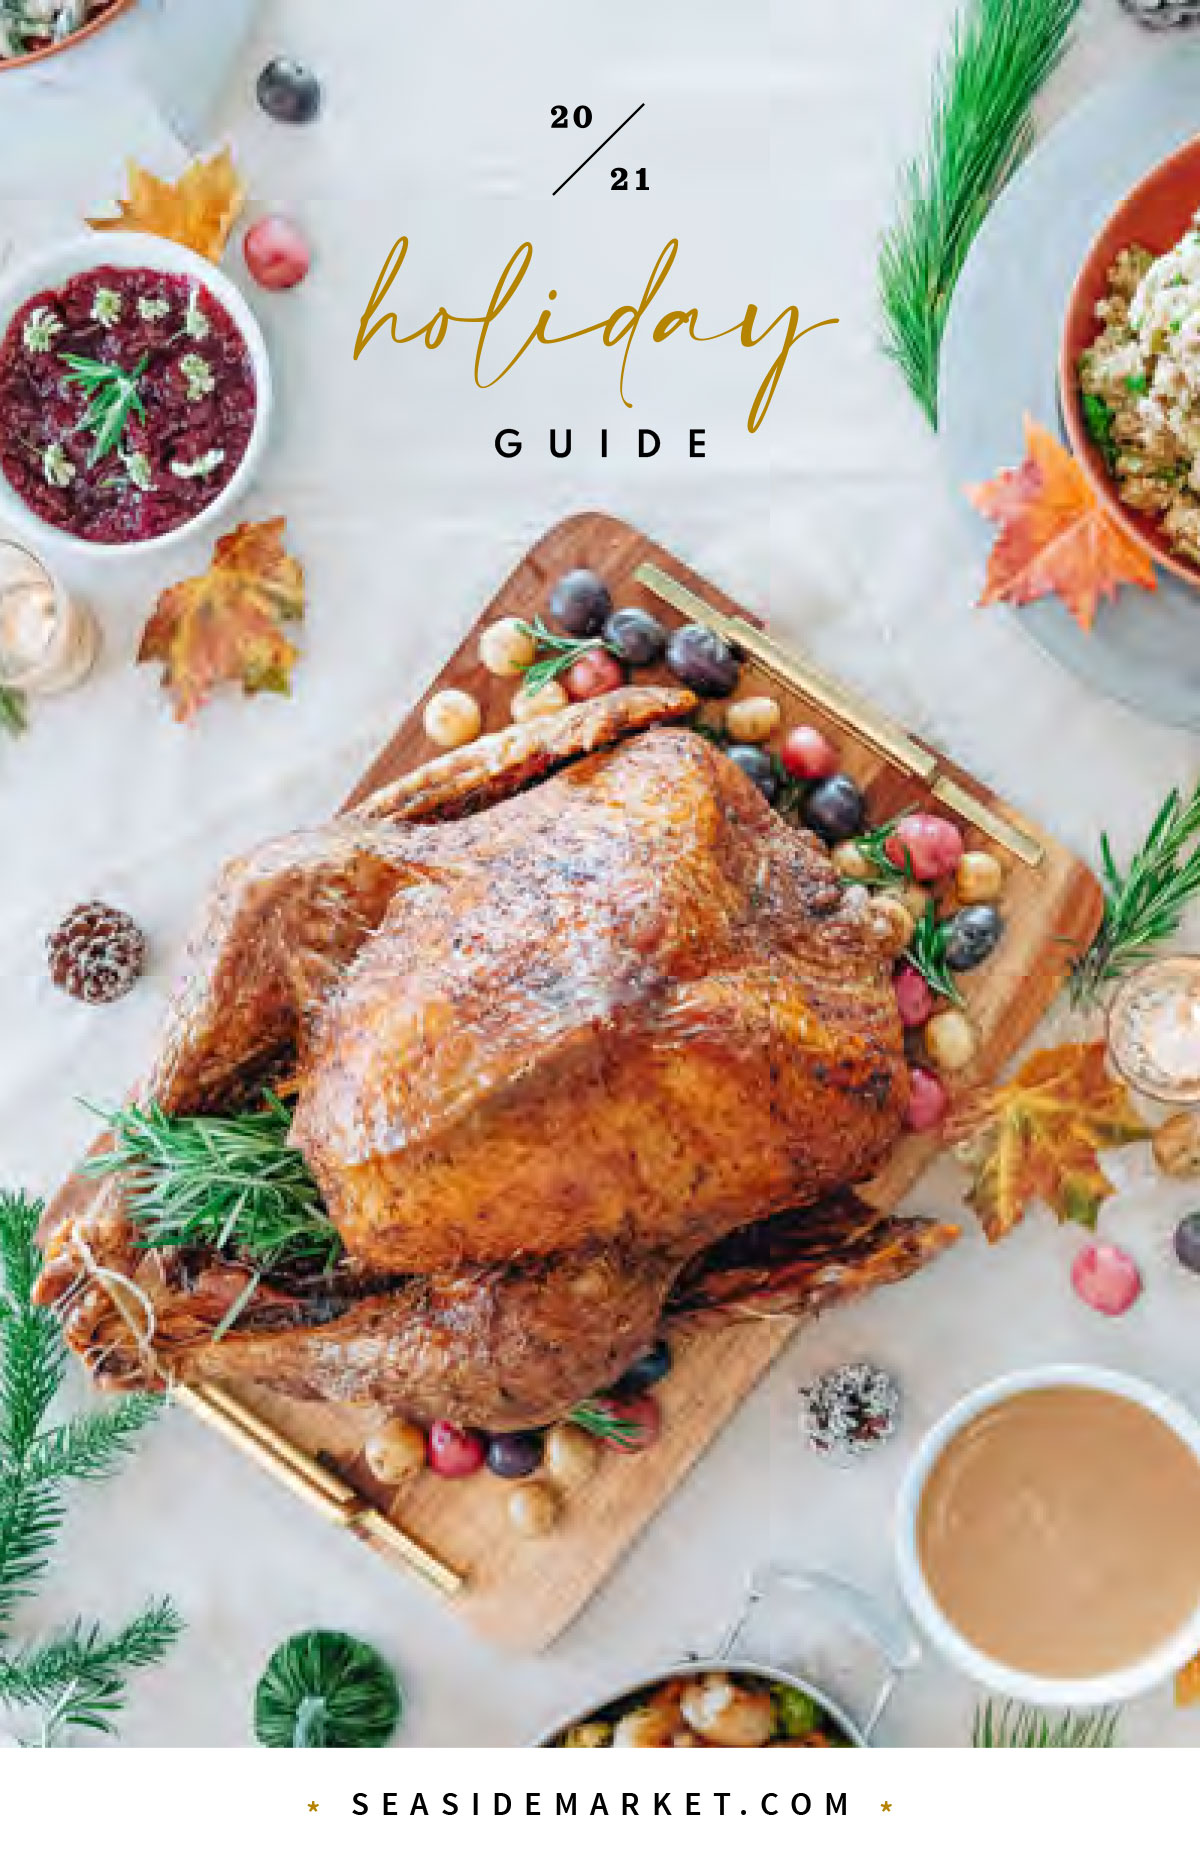 2021 Holiday Guide PDF